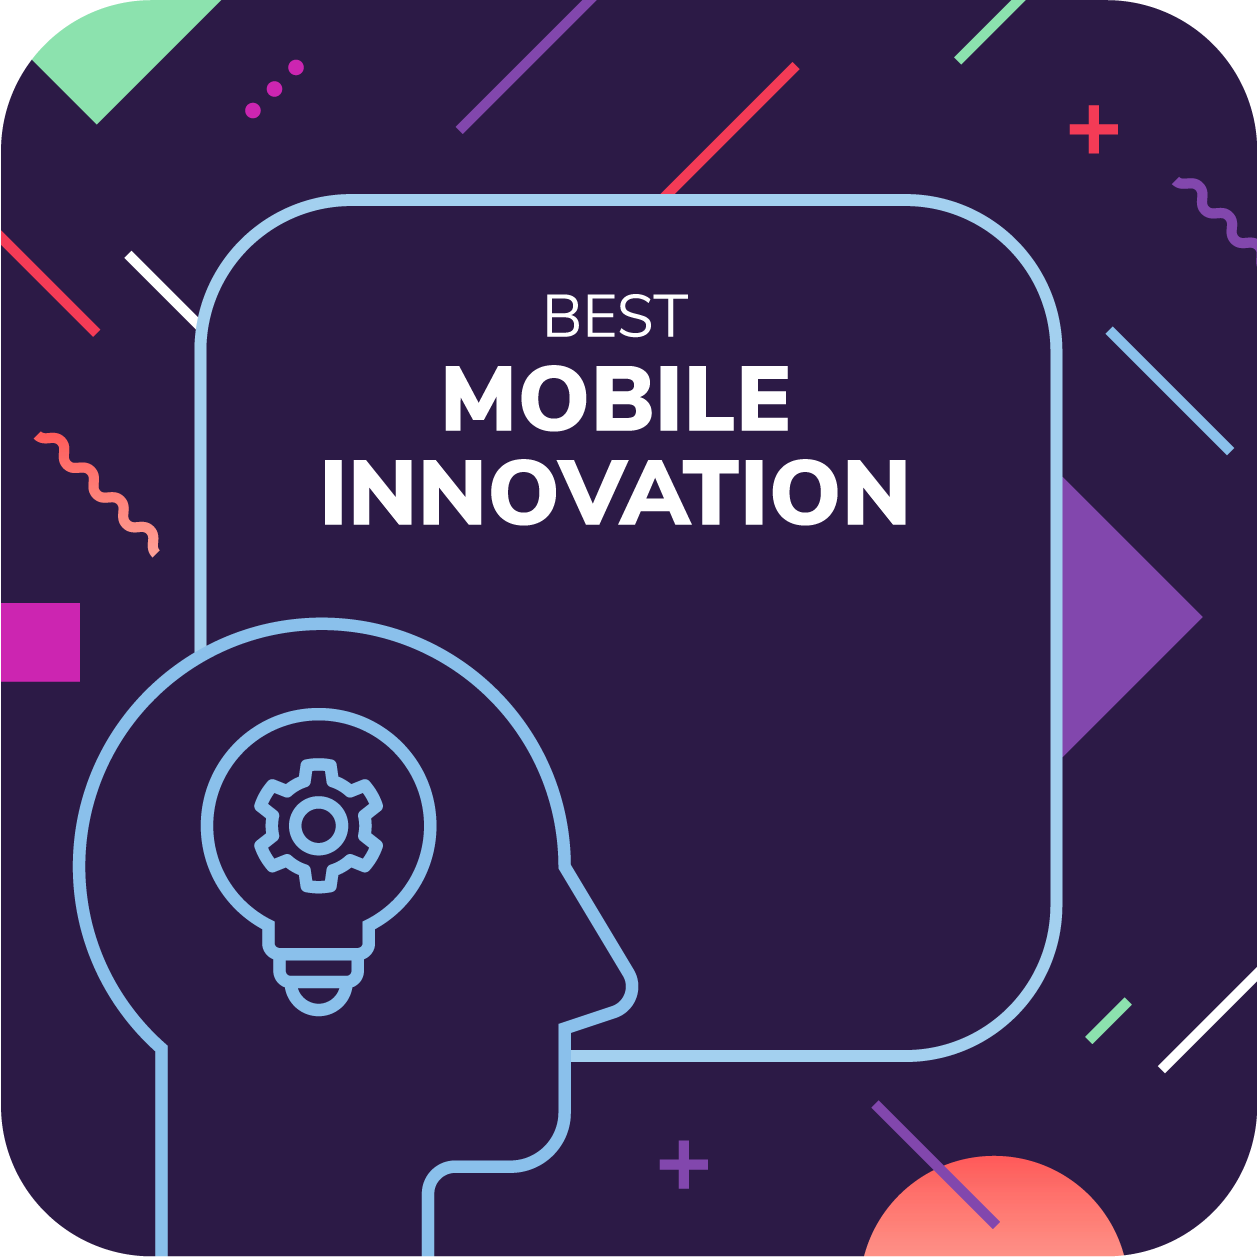 Best Mobile Innovation